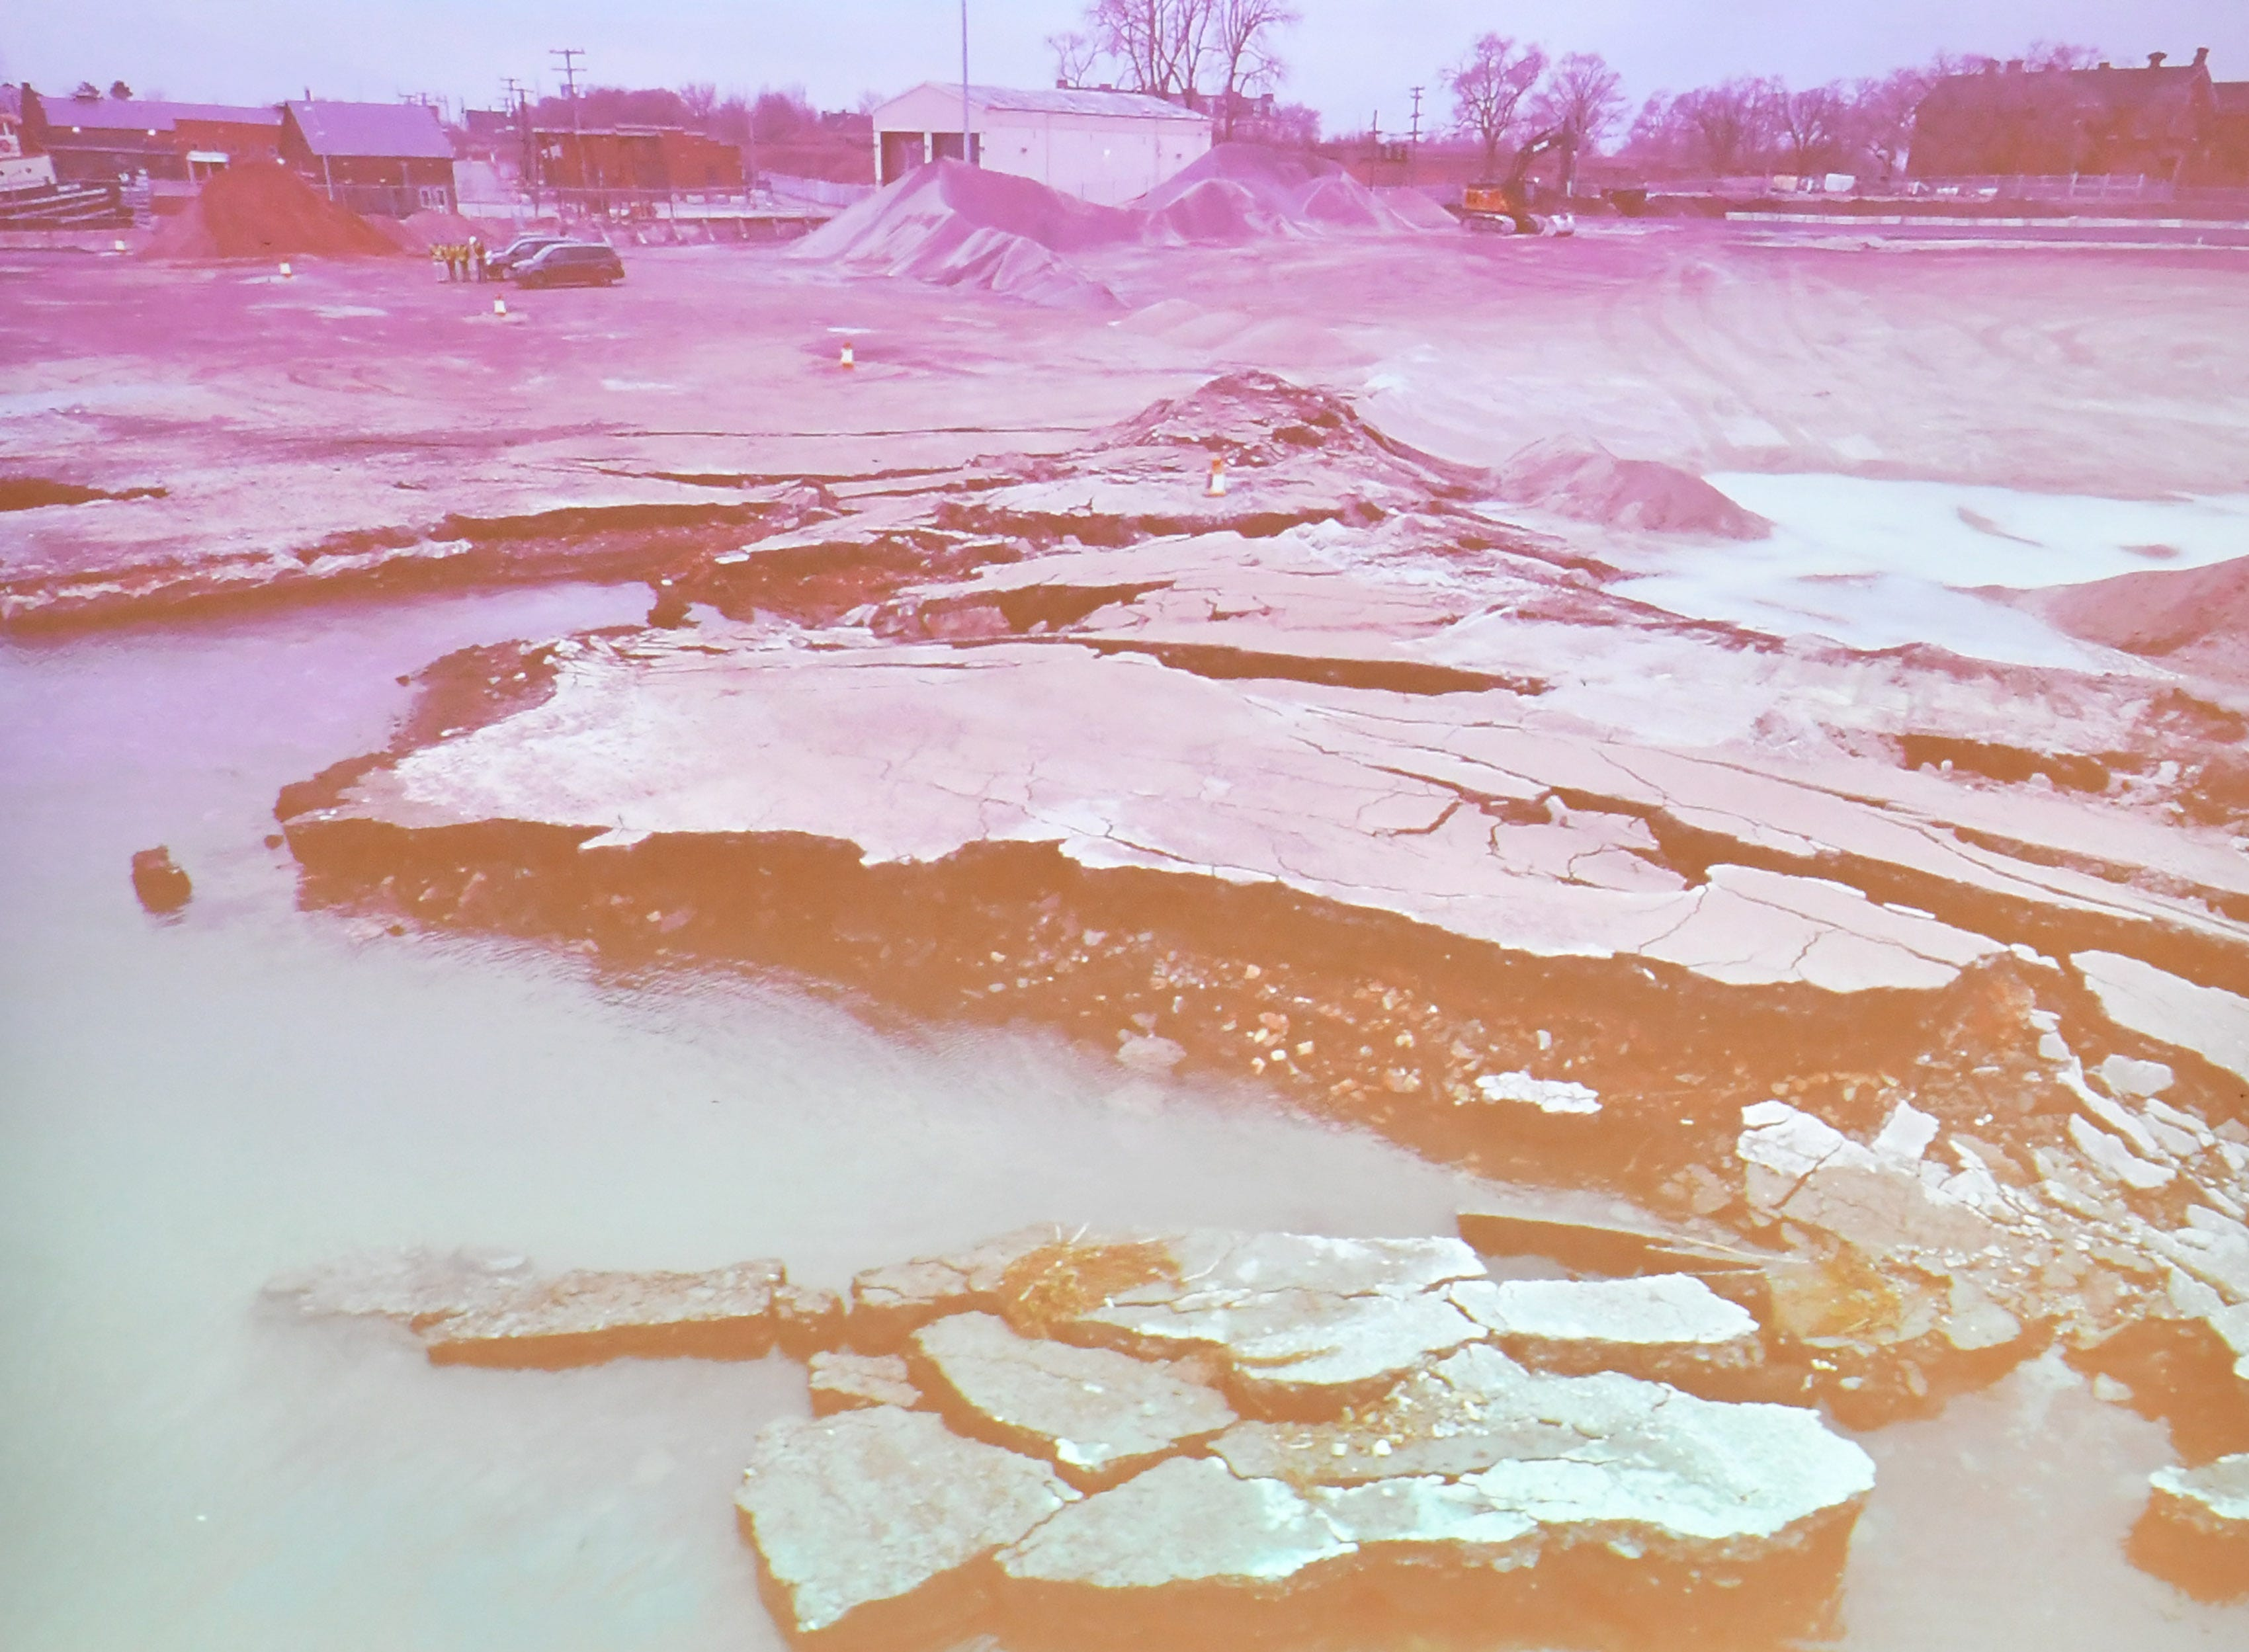 A photo of the collapse shown at the community meeting in response to the Detroit Bulk Storage collapse into the Detroit River at the Cass Corridor Commons in Detroit on Dec. 12, 2019.